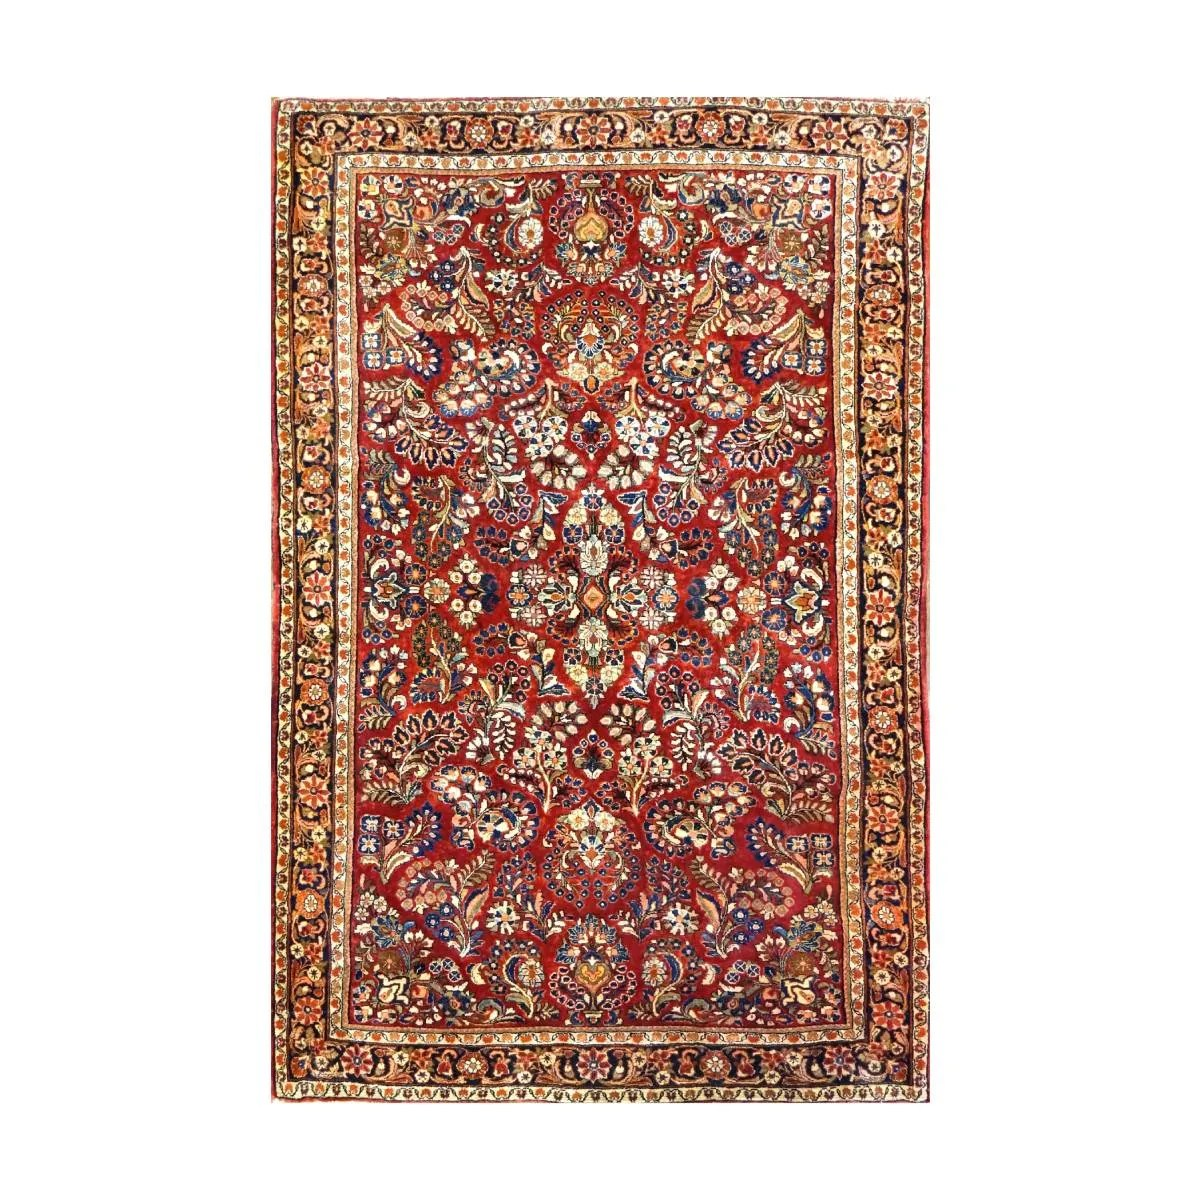 9902994 Sarouk 4 x 6 Persian Rug Red by Ashly Fine Rugs